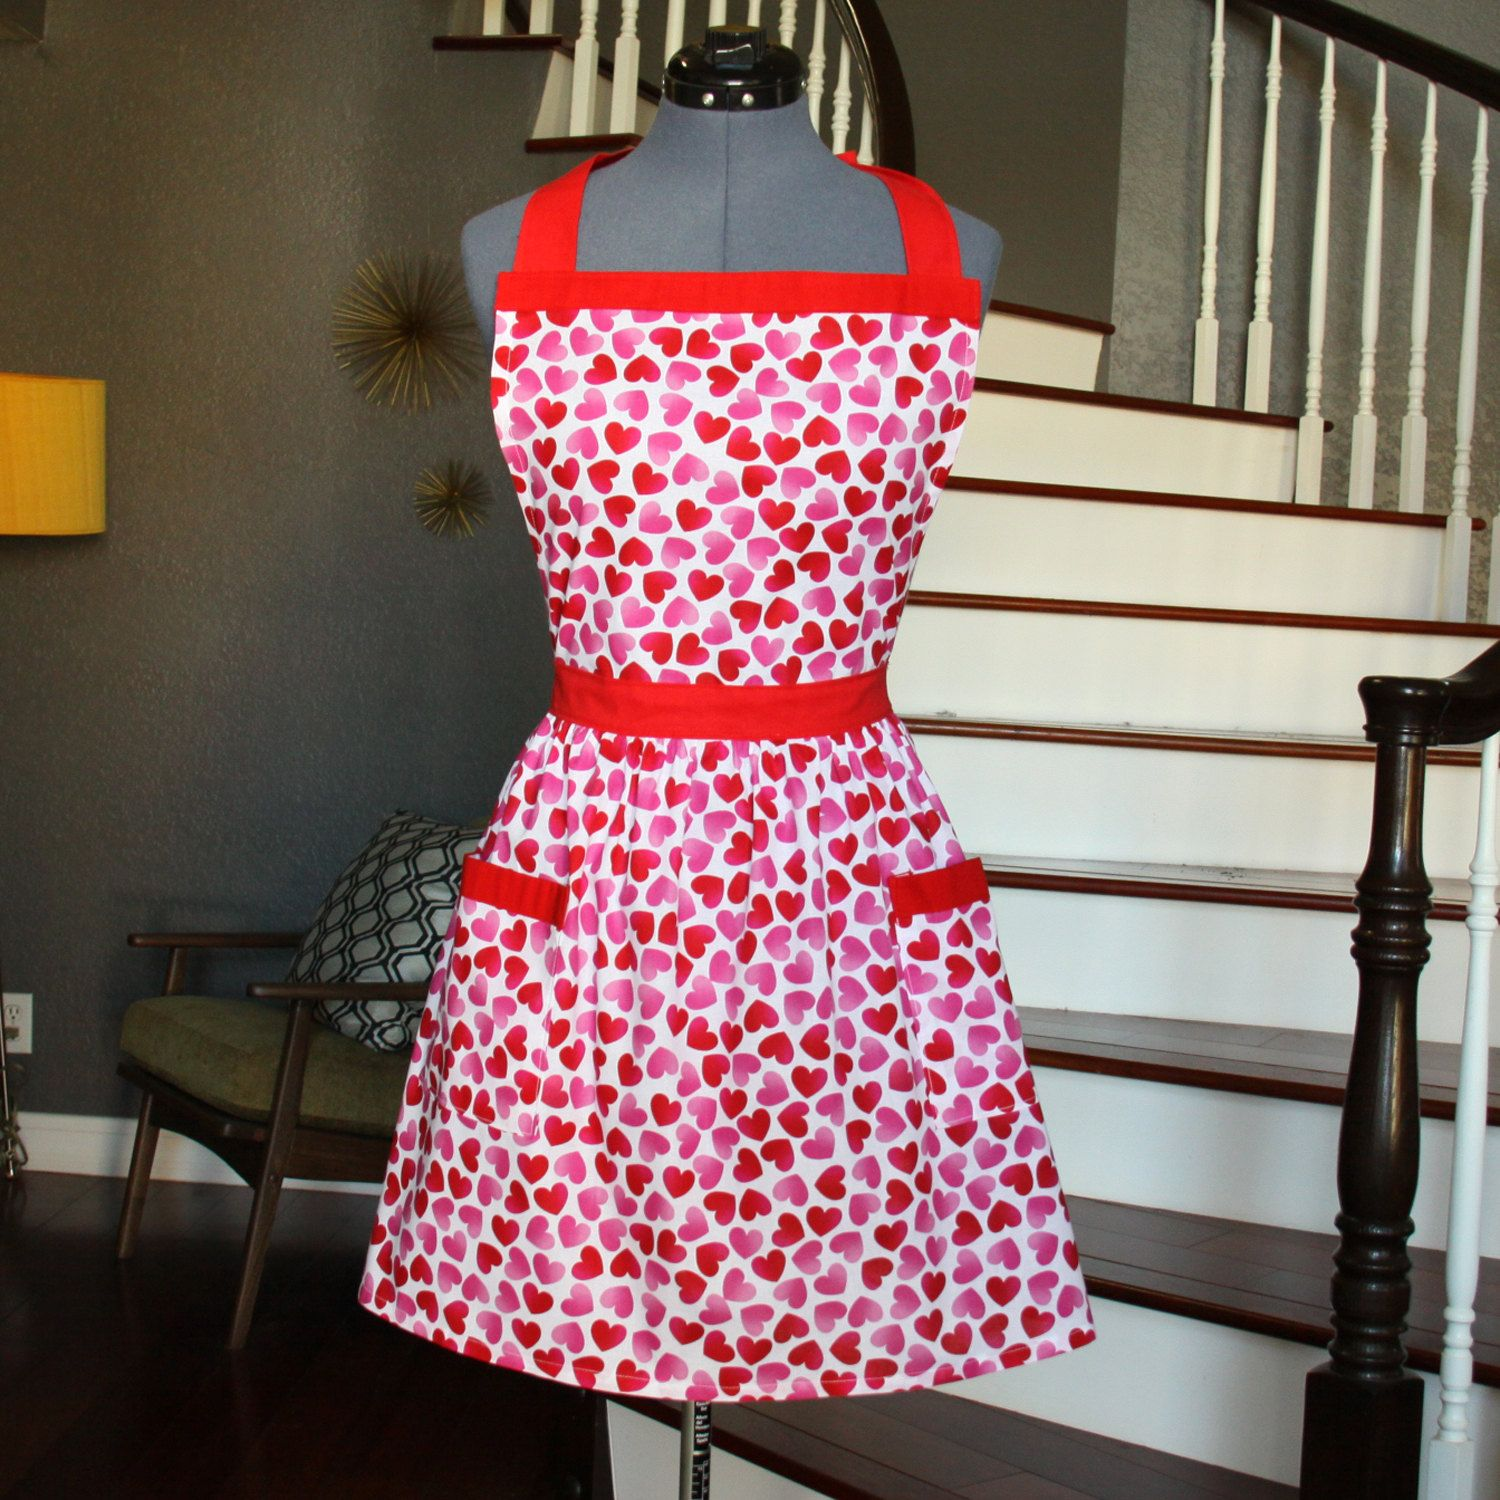 White apron etsy - Heart Aprons For Women Valentines Aprons With Pockets Womens Aprons Red White Apron Handmade Aprons Kitchen Apron Janet Apron